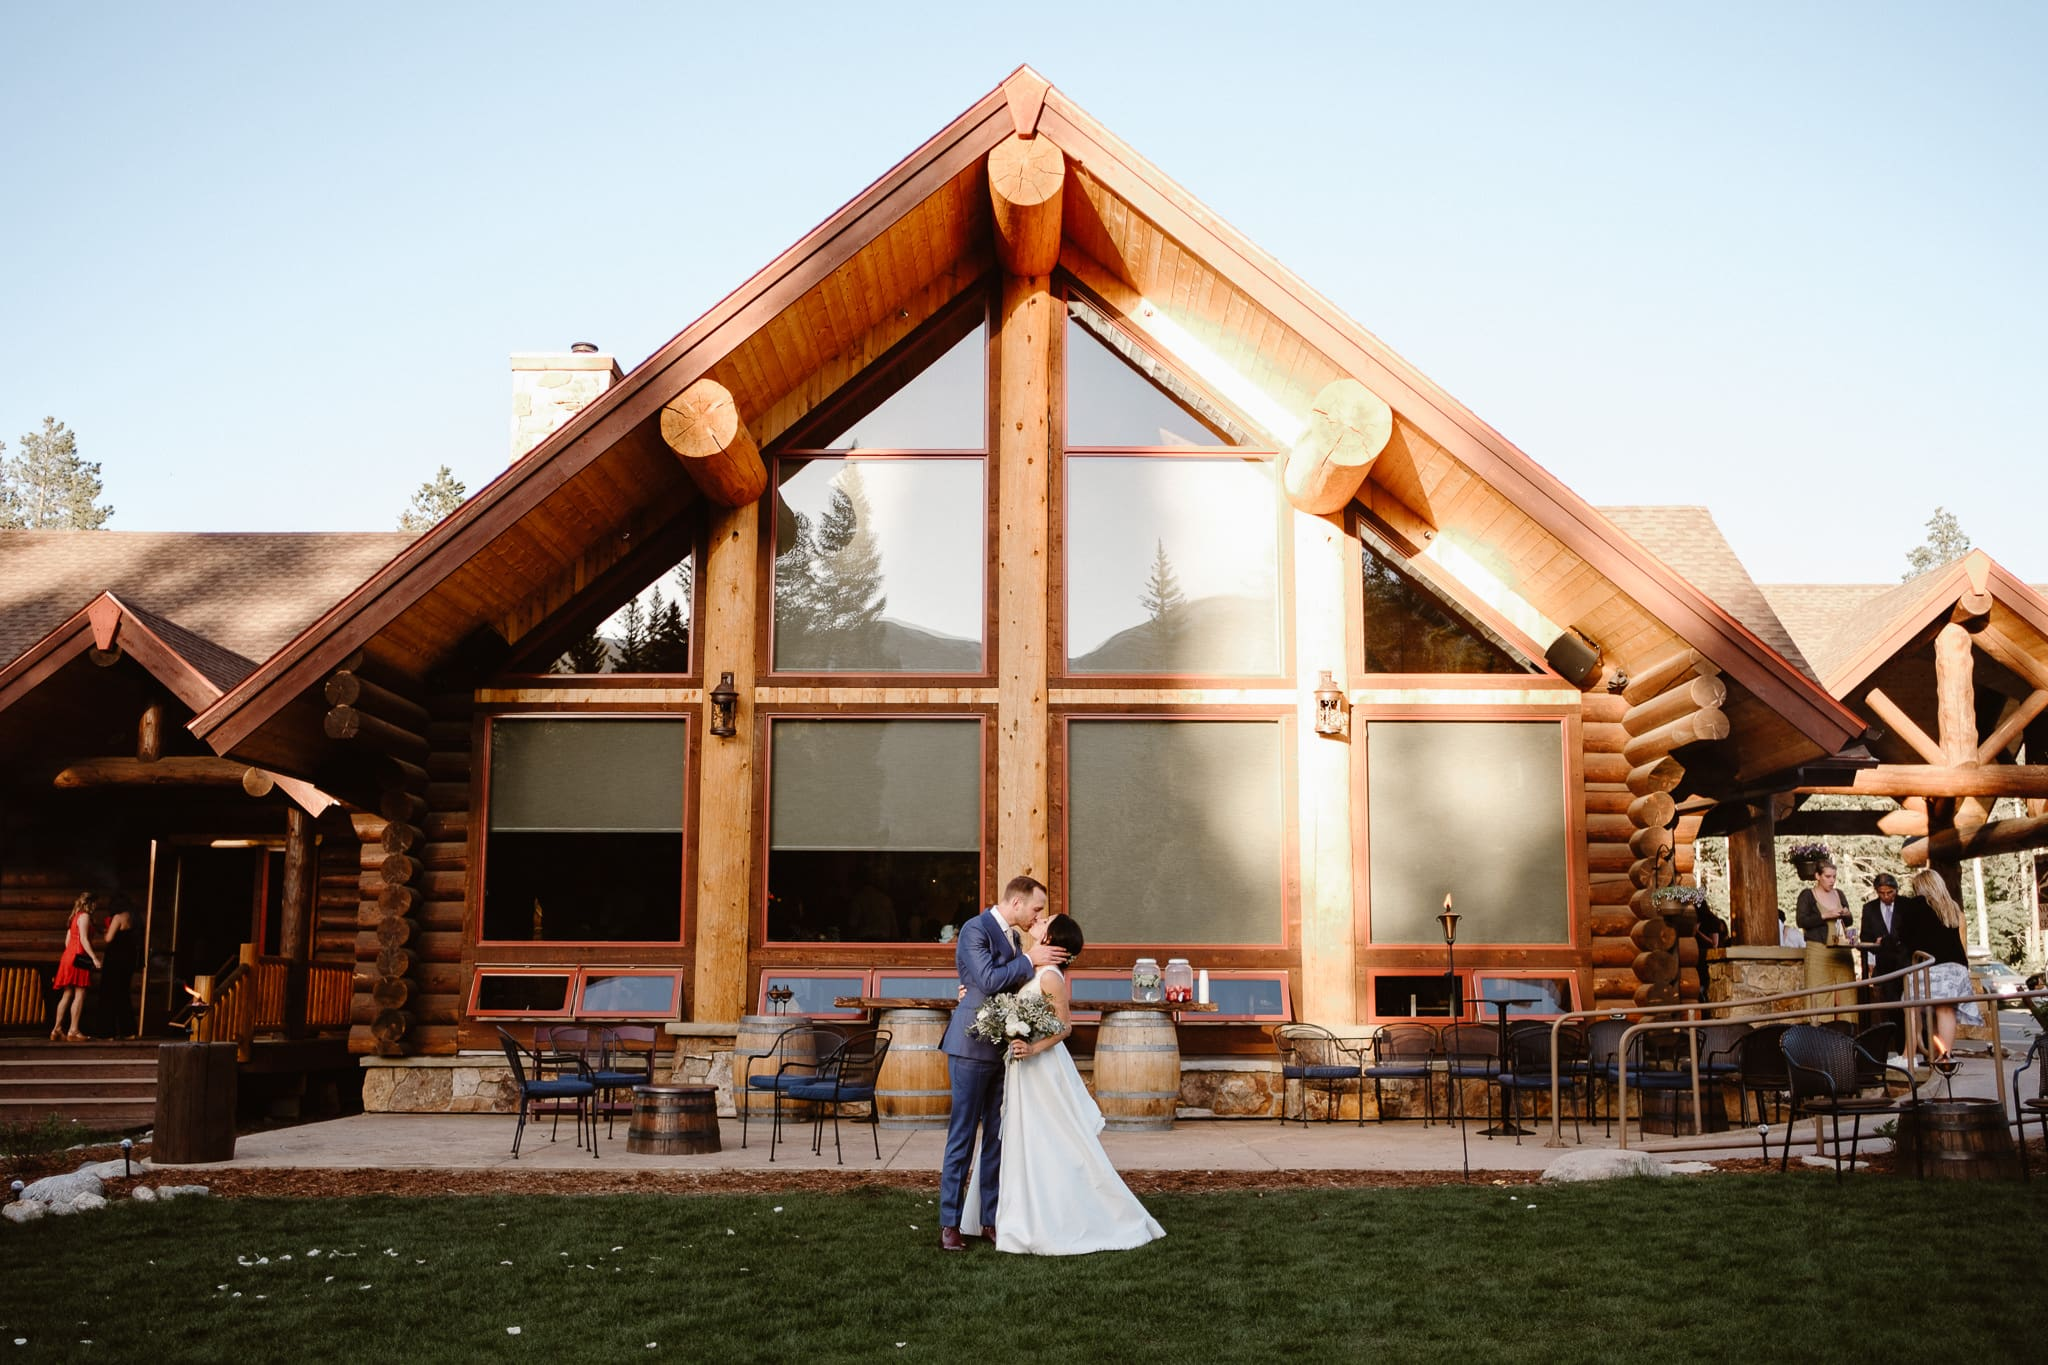 Breckenridge Nordic Center Wedding Photographer, Colorado mountain wedding venue,